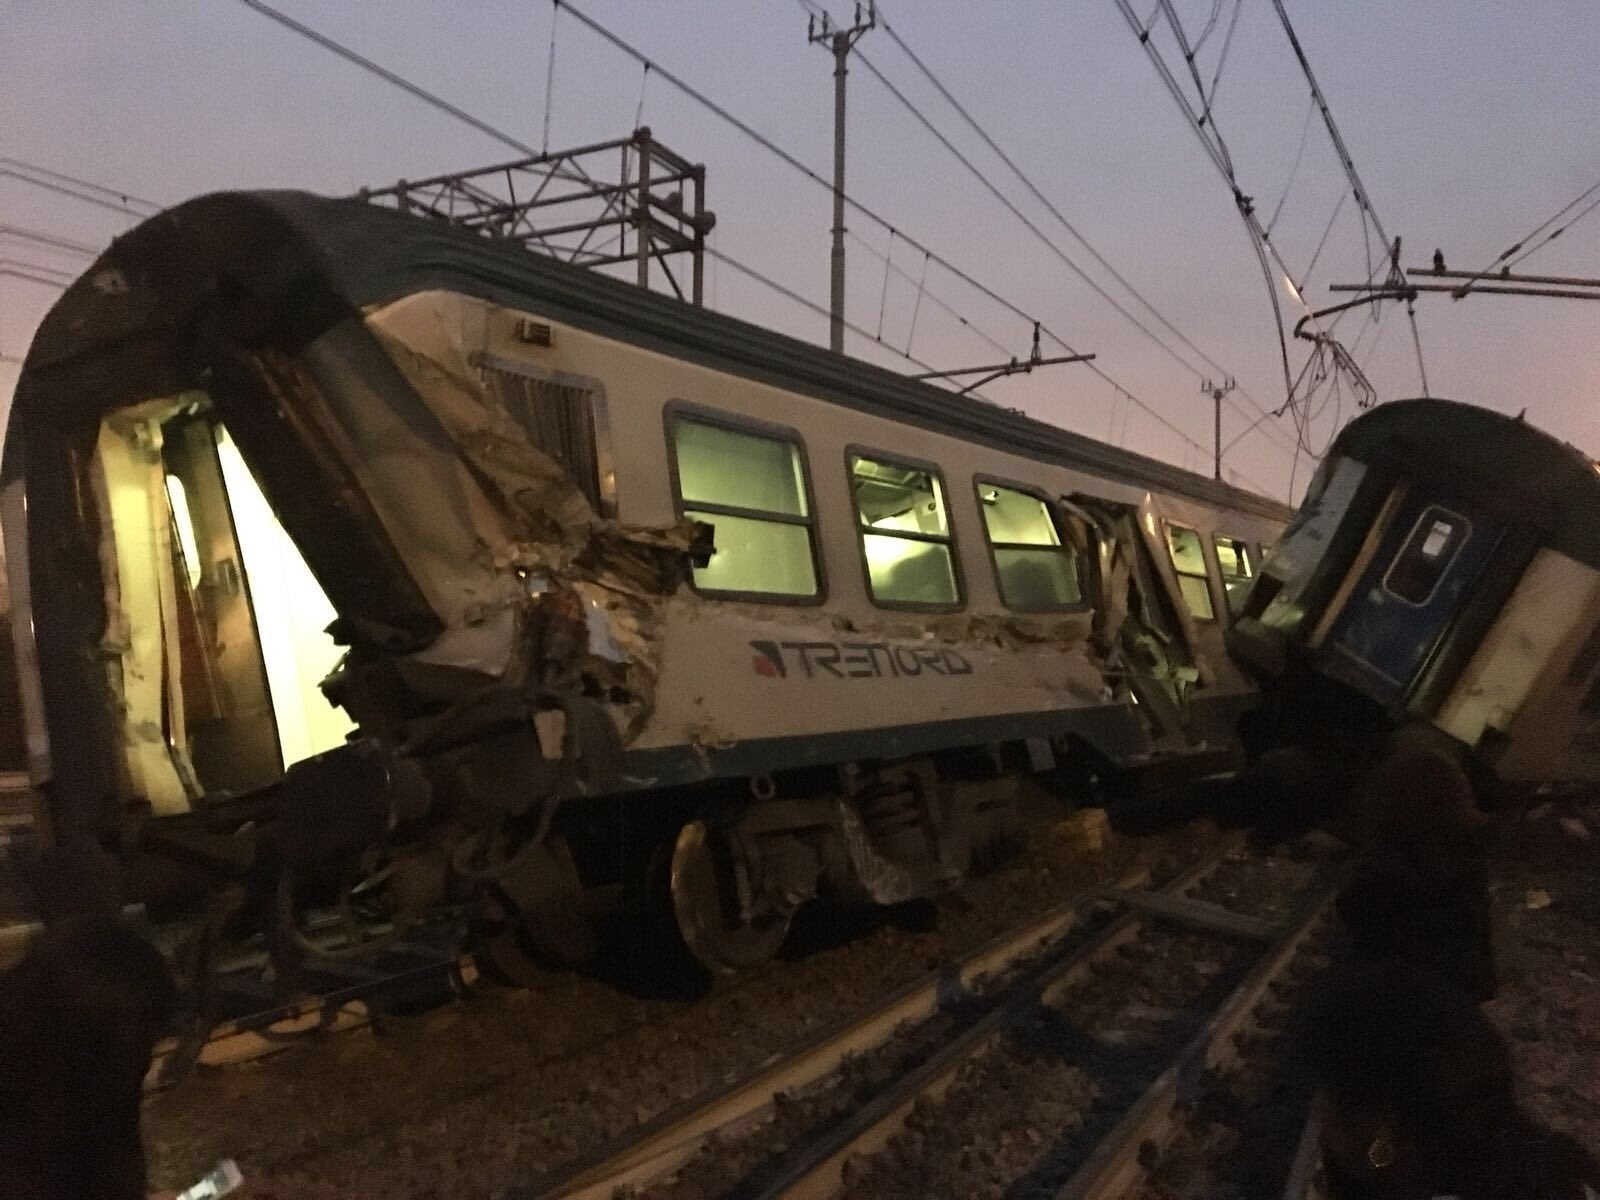 5 dead after train derails near Milan: Fire brigade official